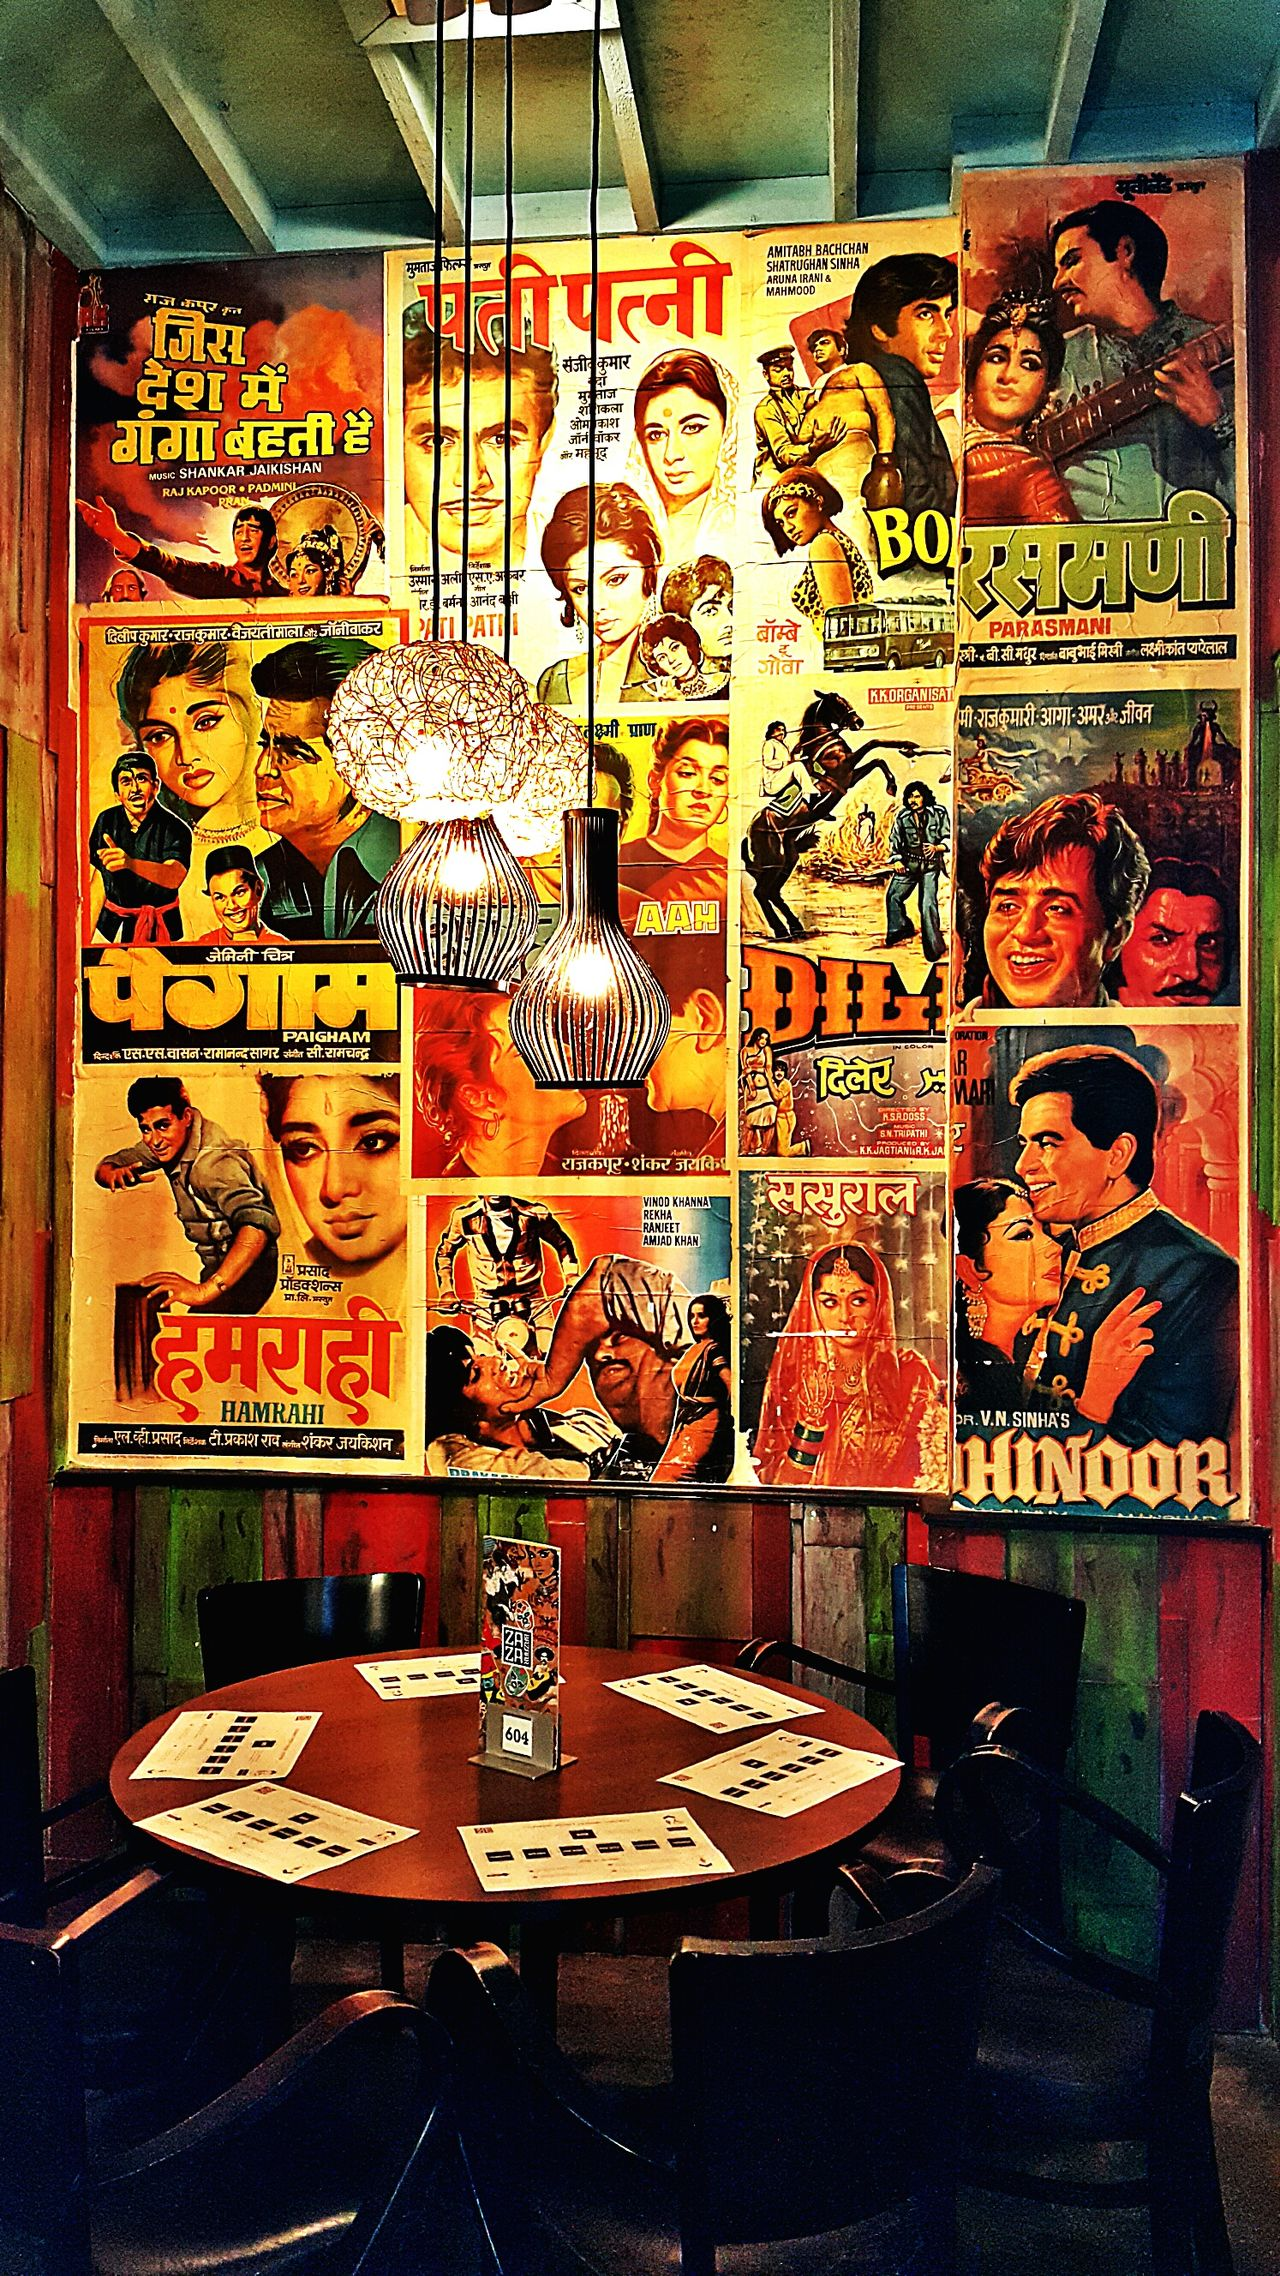 Bollywood Movies India Classic Vintage Nostalgia Posters Wallart Interior Design Restaurant Decor Close-up Indoors  No People Furnitures Dining Wallpapers Drawing, Painting, Artwork Heroes Heroines Acting Romance ❤✨✨ Comedy Drama Love ♥ Songs